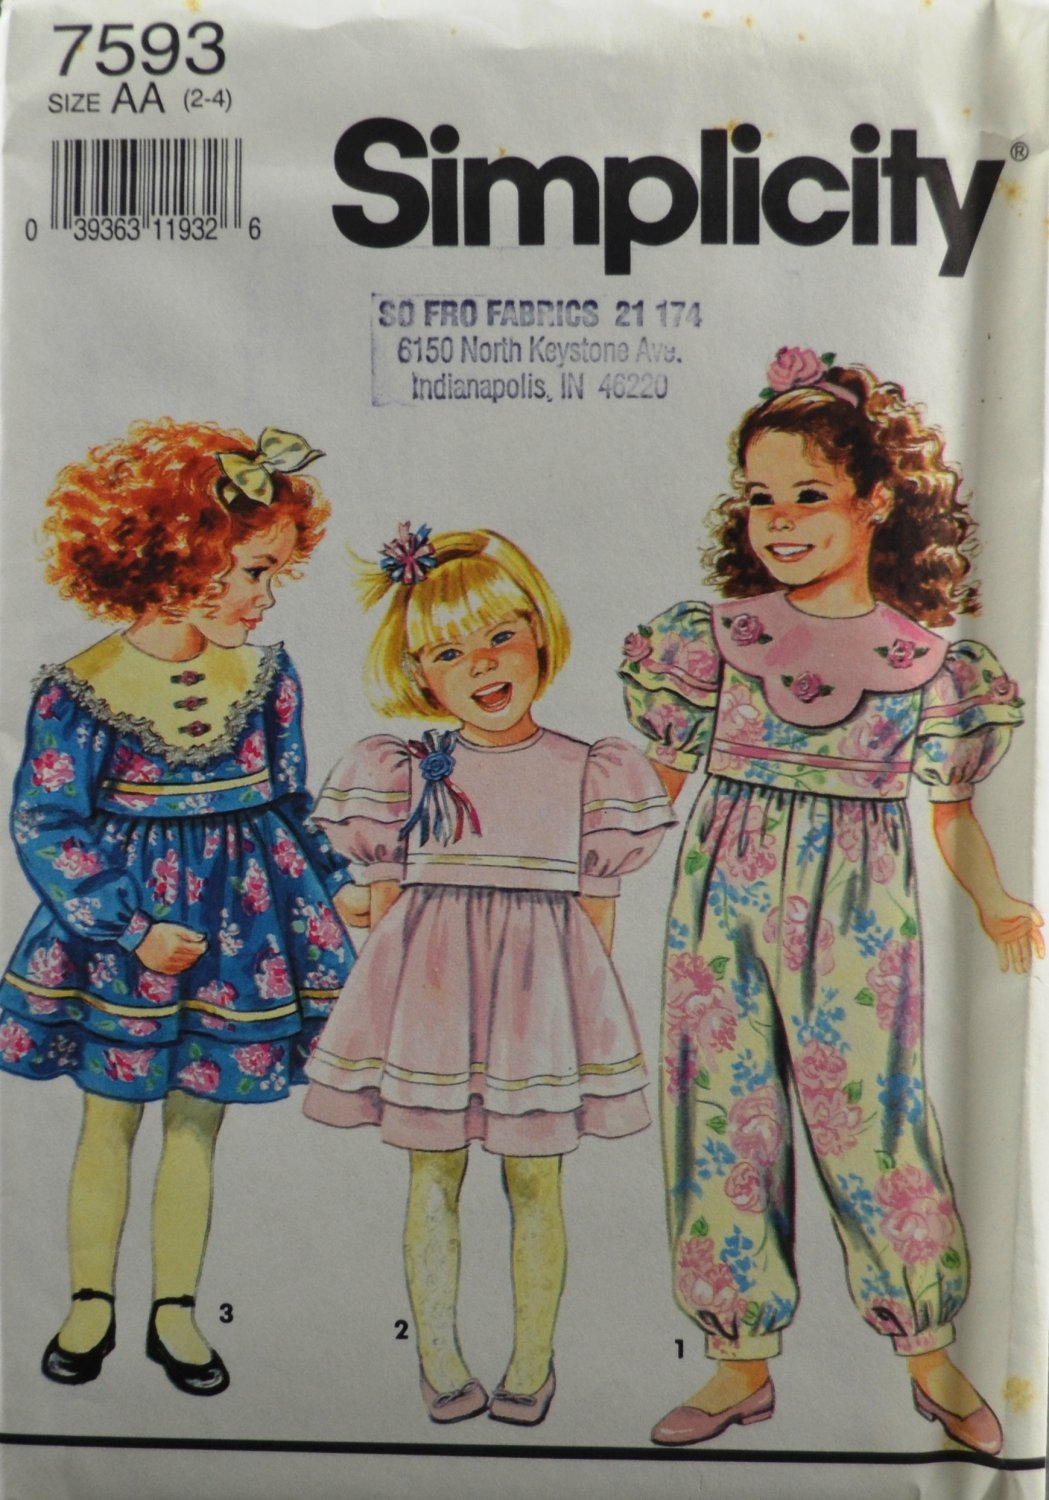 Simplicity 7593 Sewing Pattern Child's Dress & Romper Size AA 2-4